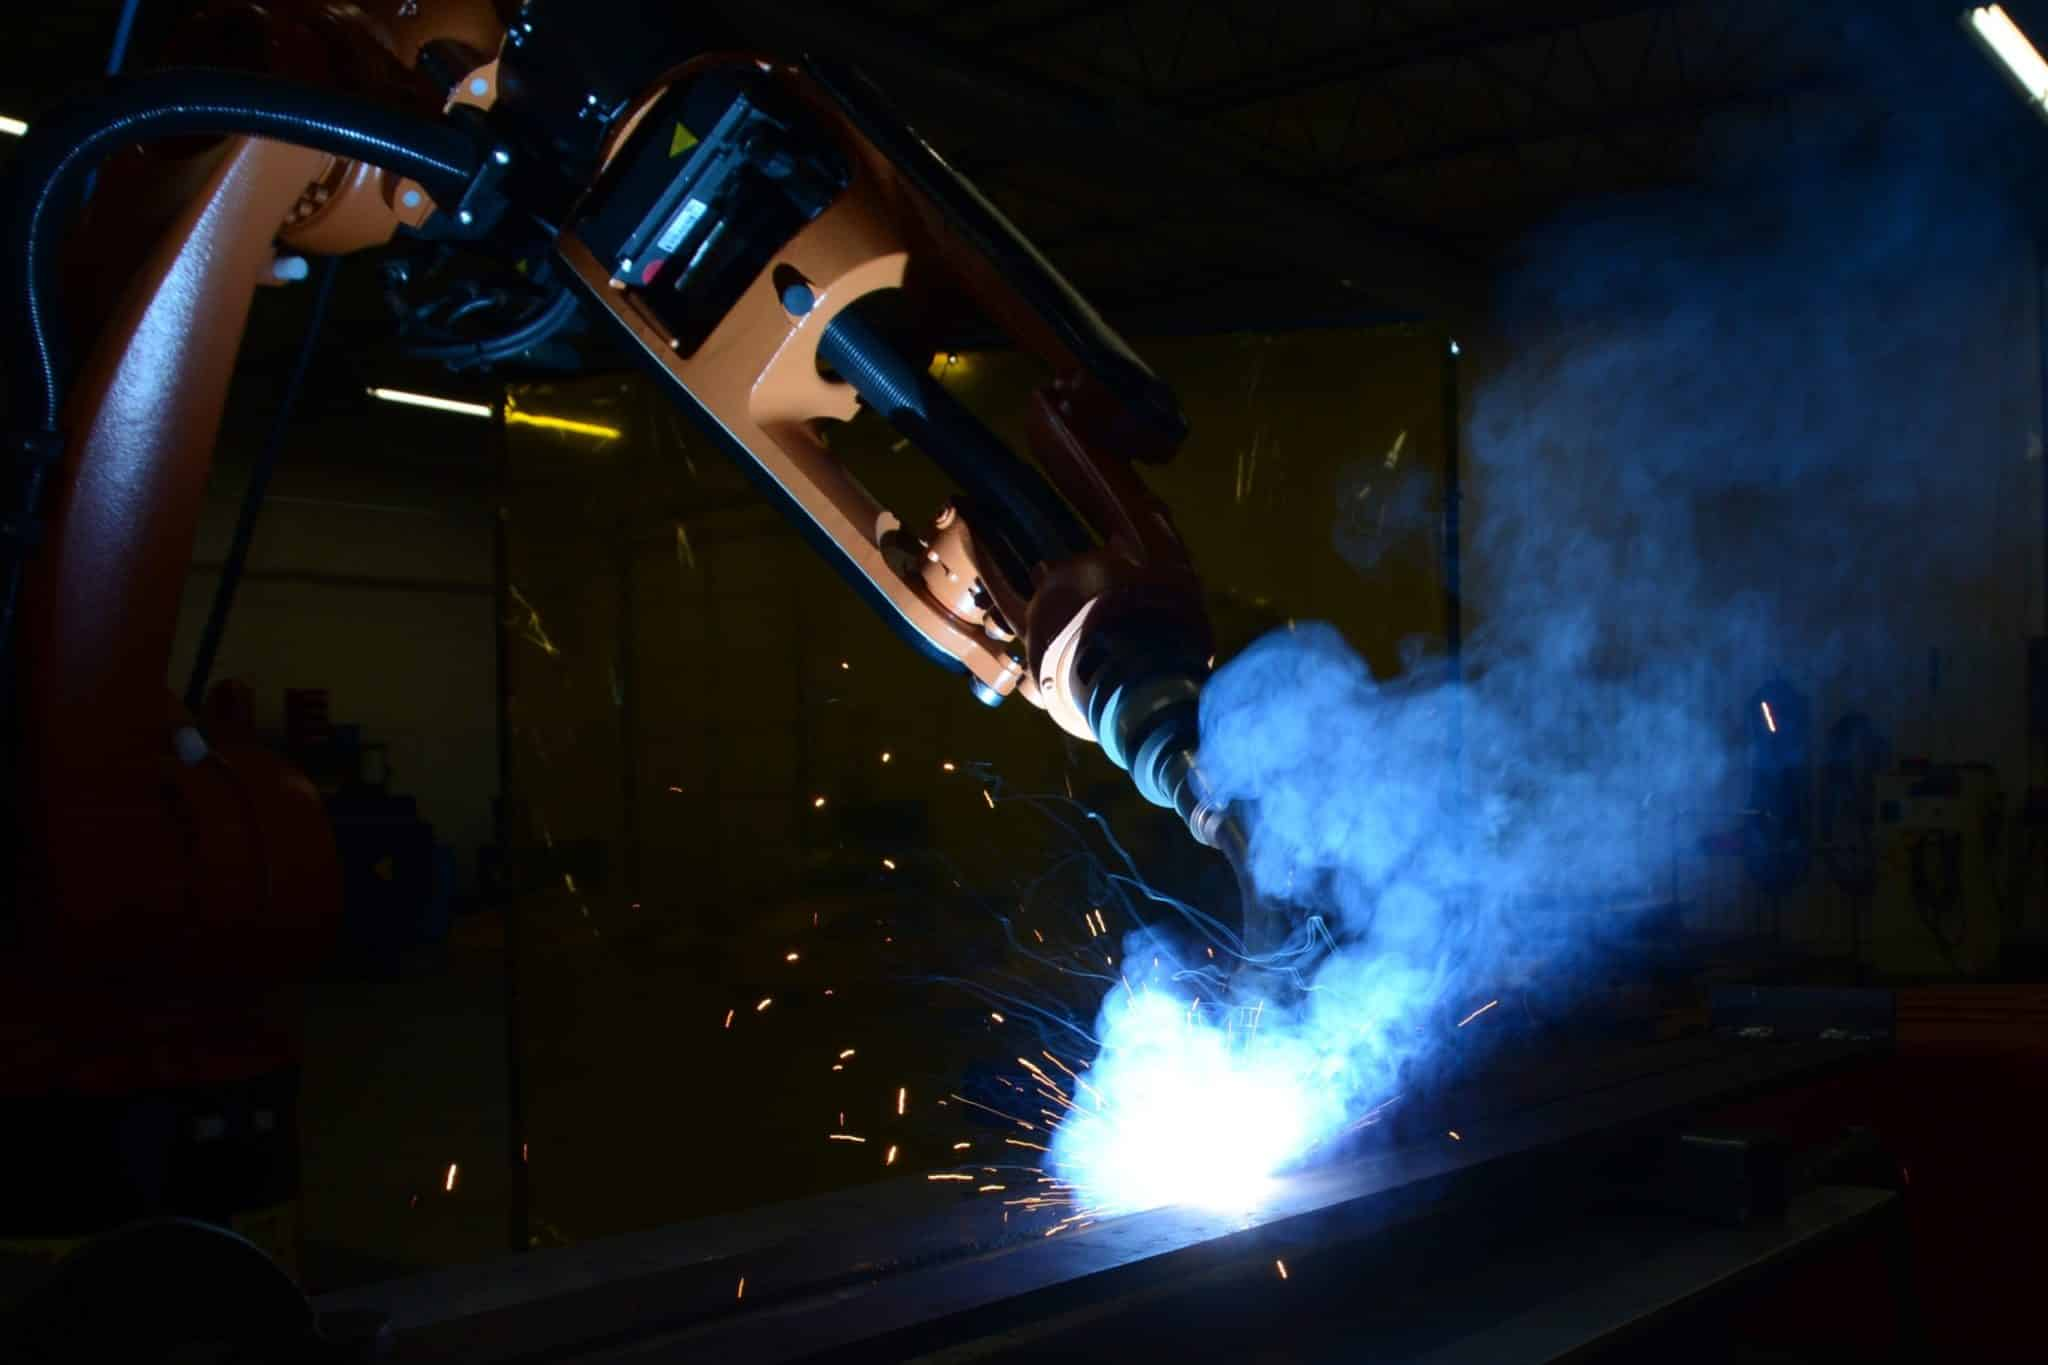 KC Robotics offers complete welding solutions for aluminum, steel and alloy processes.